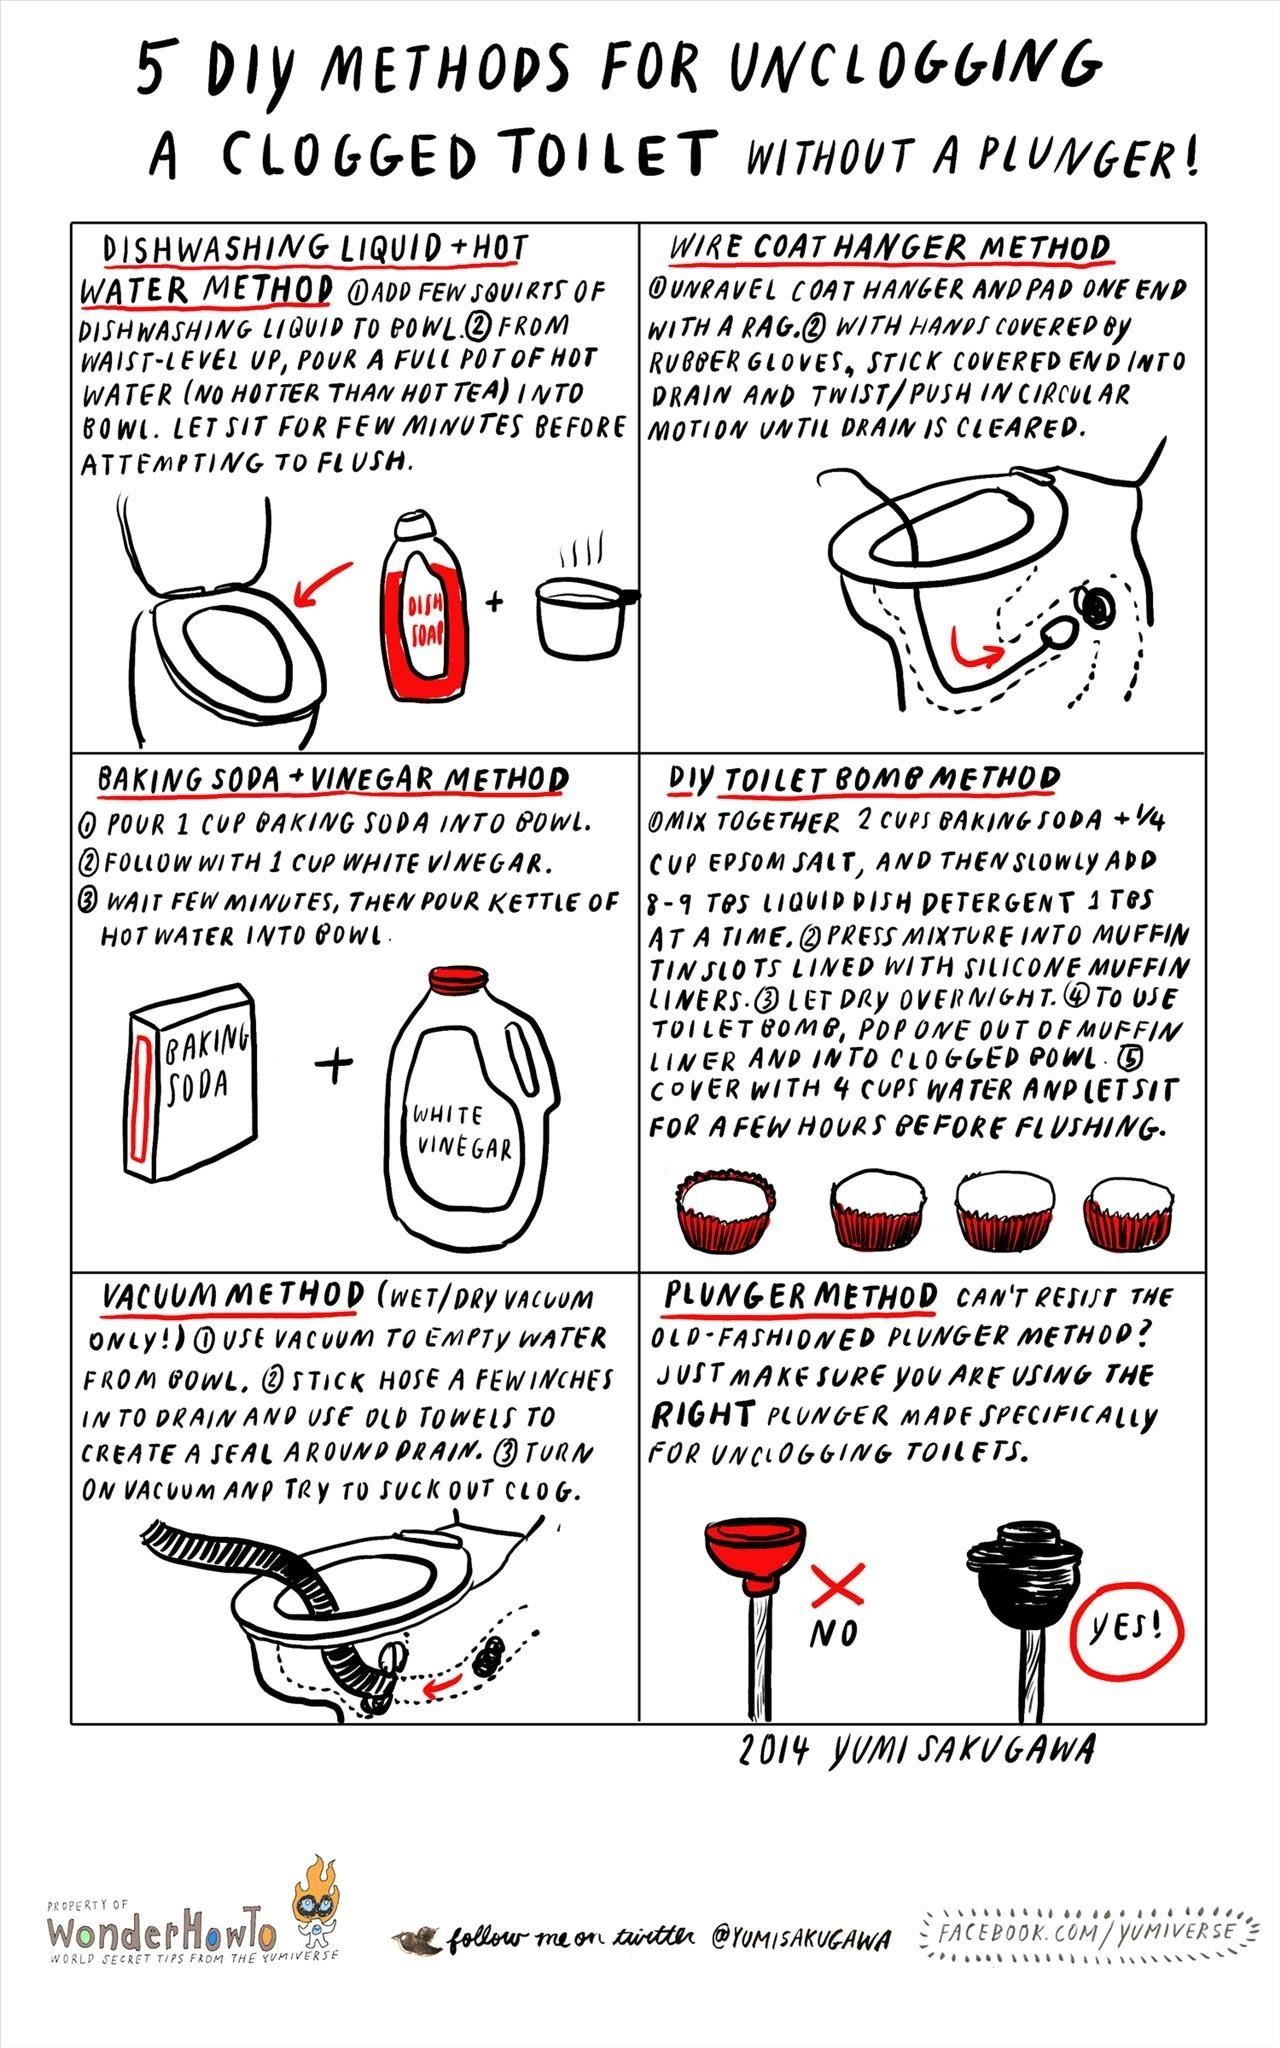 5 diy methods for unclogging clogged toilet without plunger kitchen sink clogged Click on image to enlarge